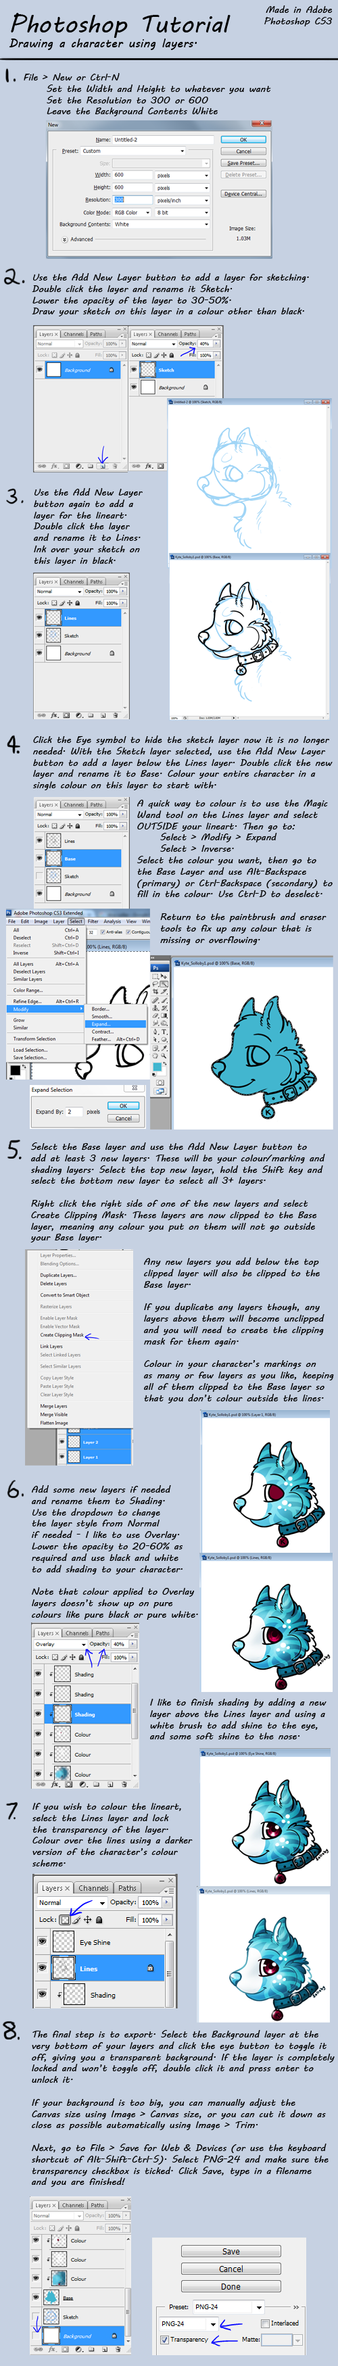 Photoshop tutorial draw a character using layers by solloby on photoshop tutorial draw a character using layers by solloby baditri Image collections